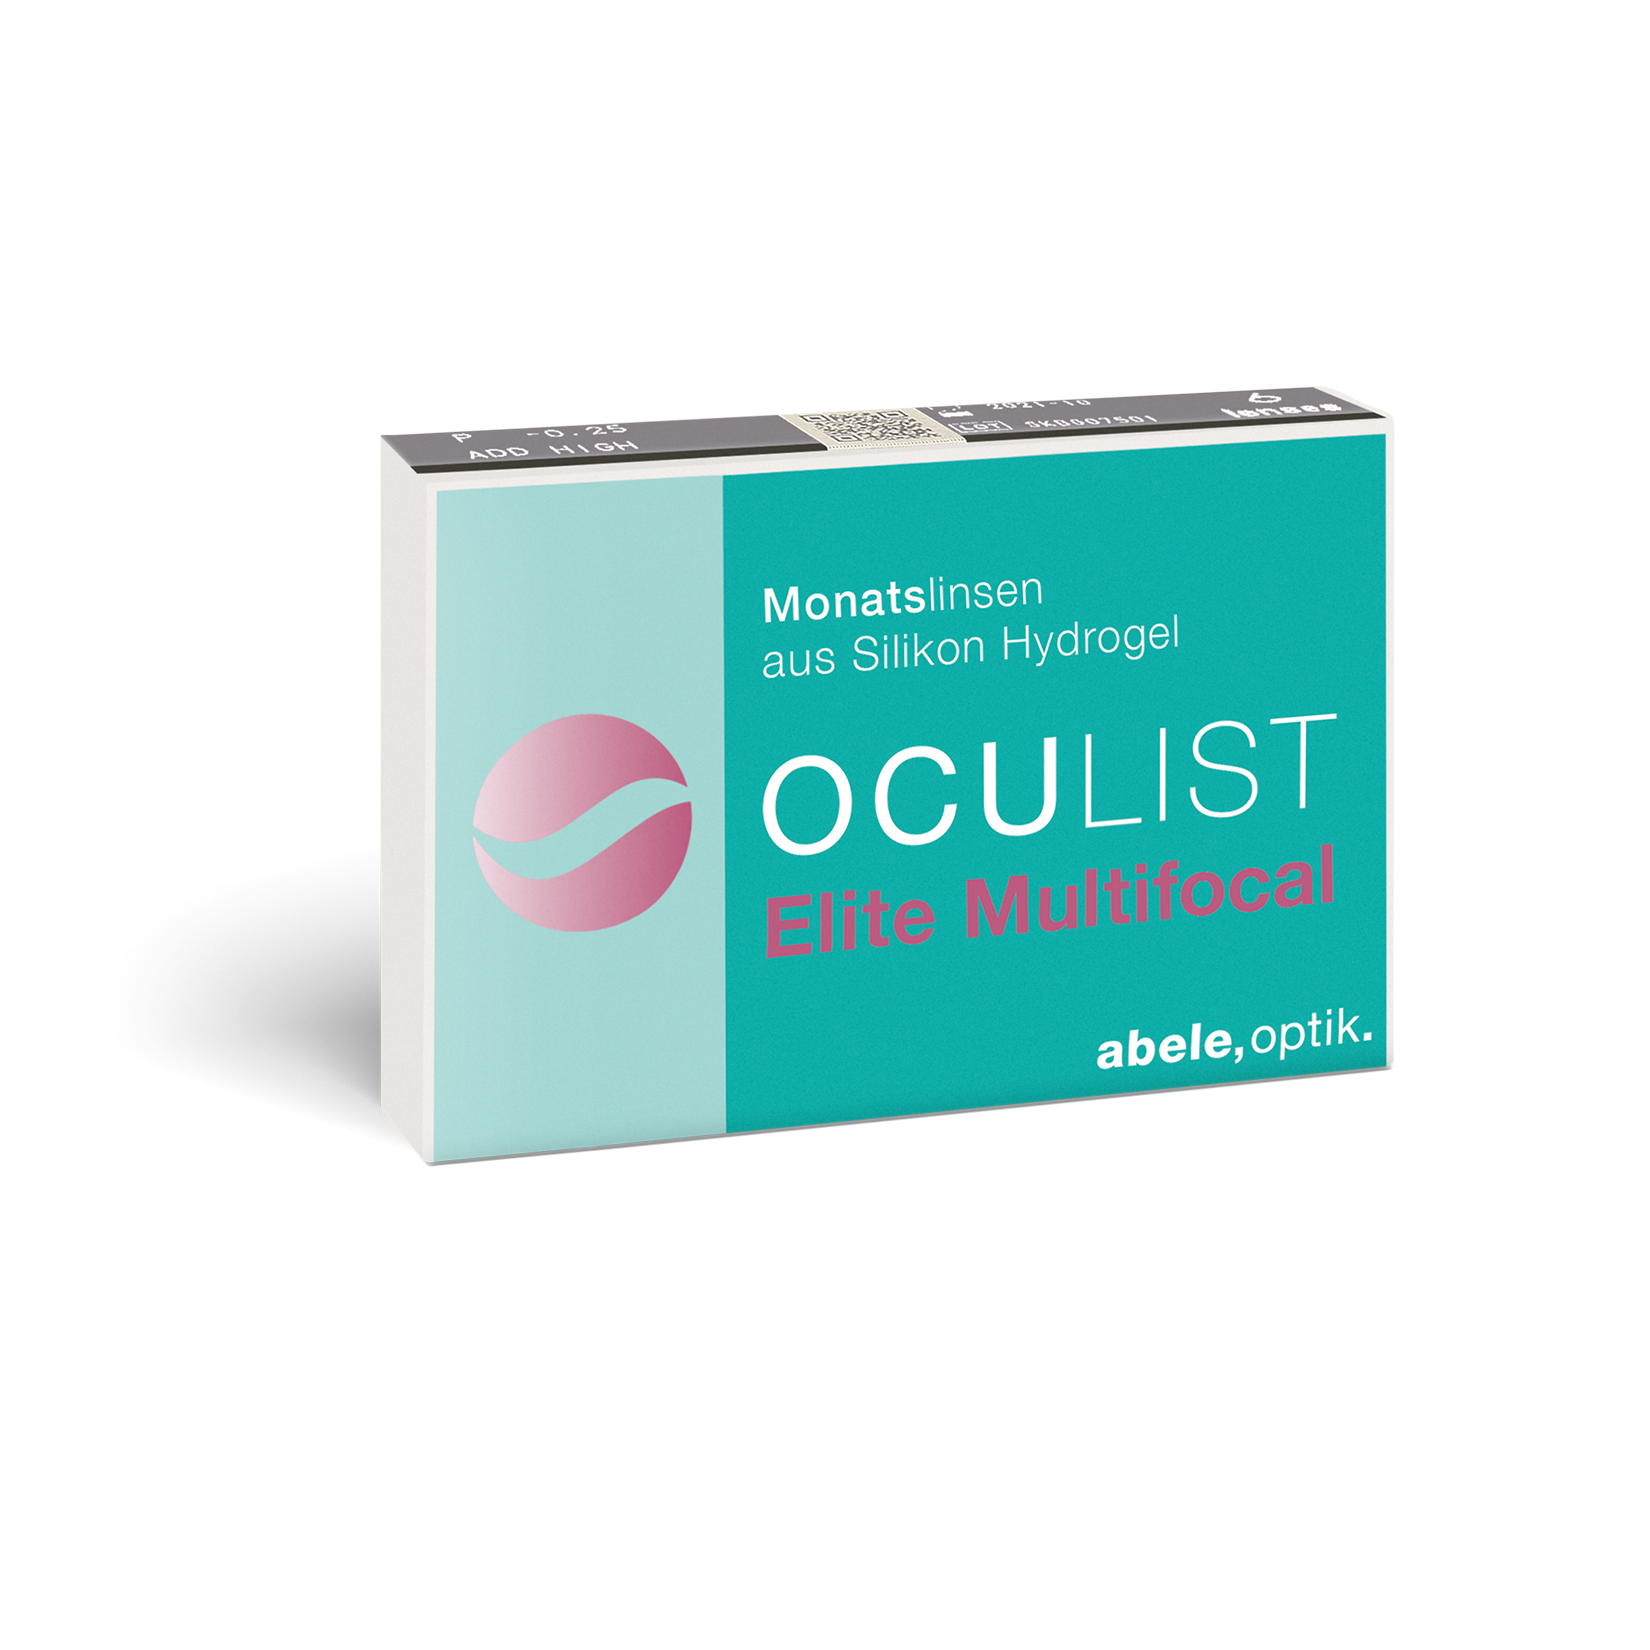 Oculist Elite Multifocal, Abele Optik (6 Stk.)